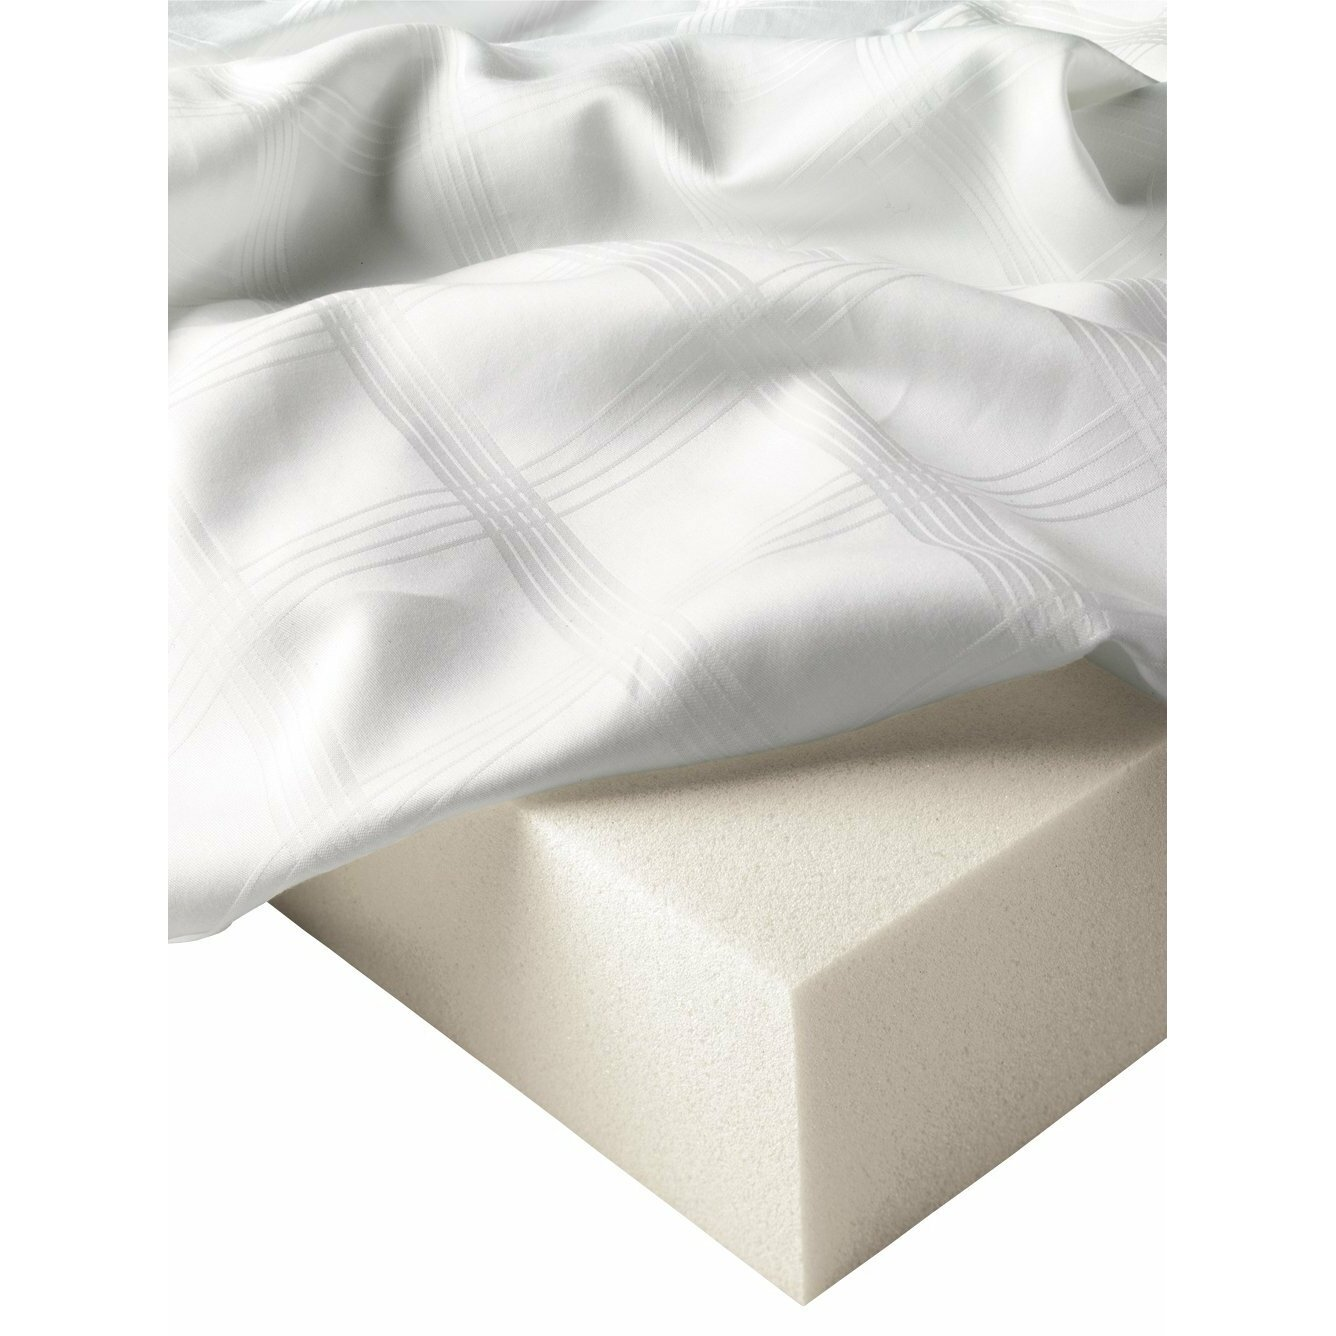 Comforzen Full Memory Foam Mattress Topper Reviews